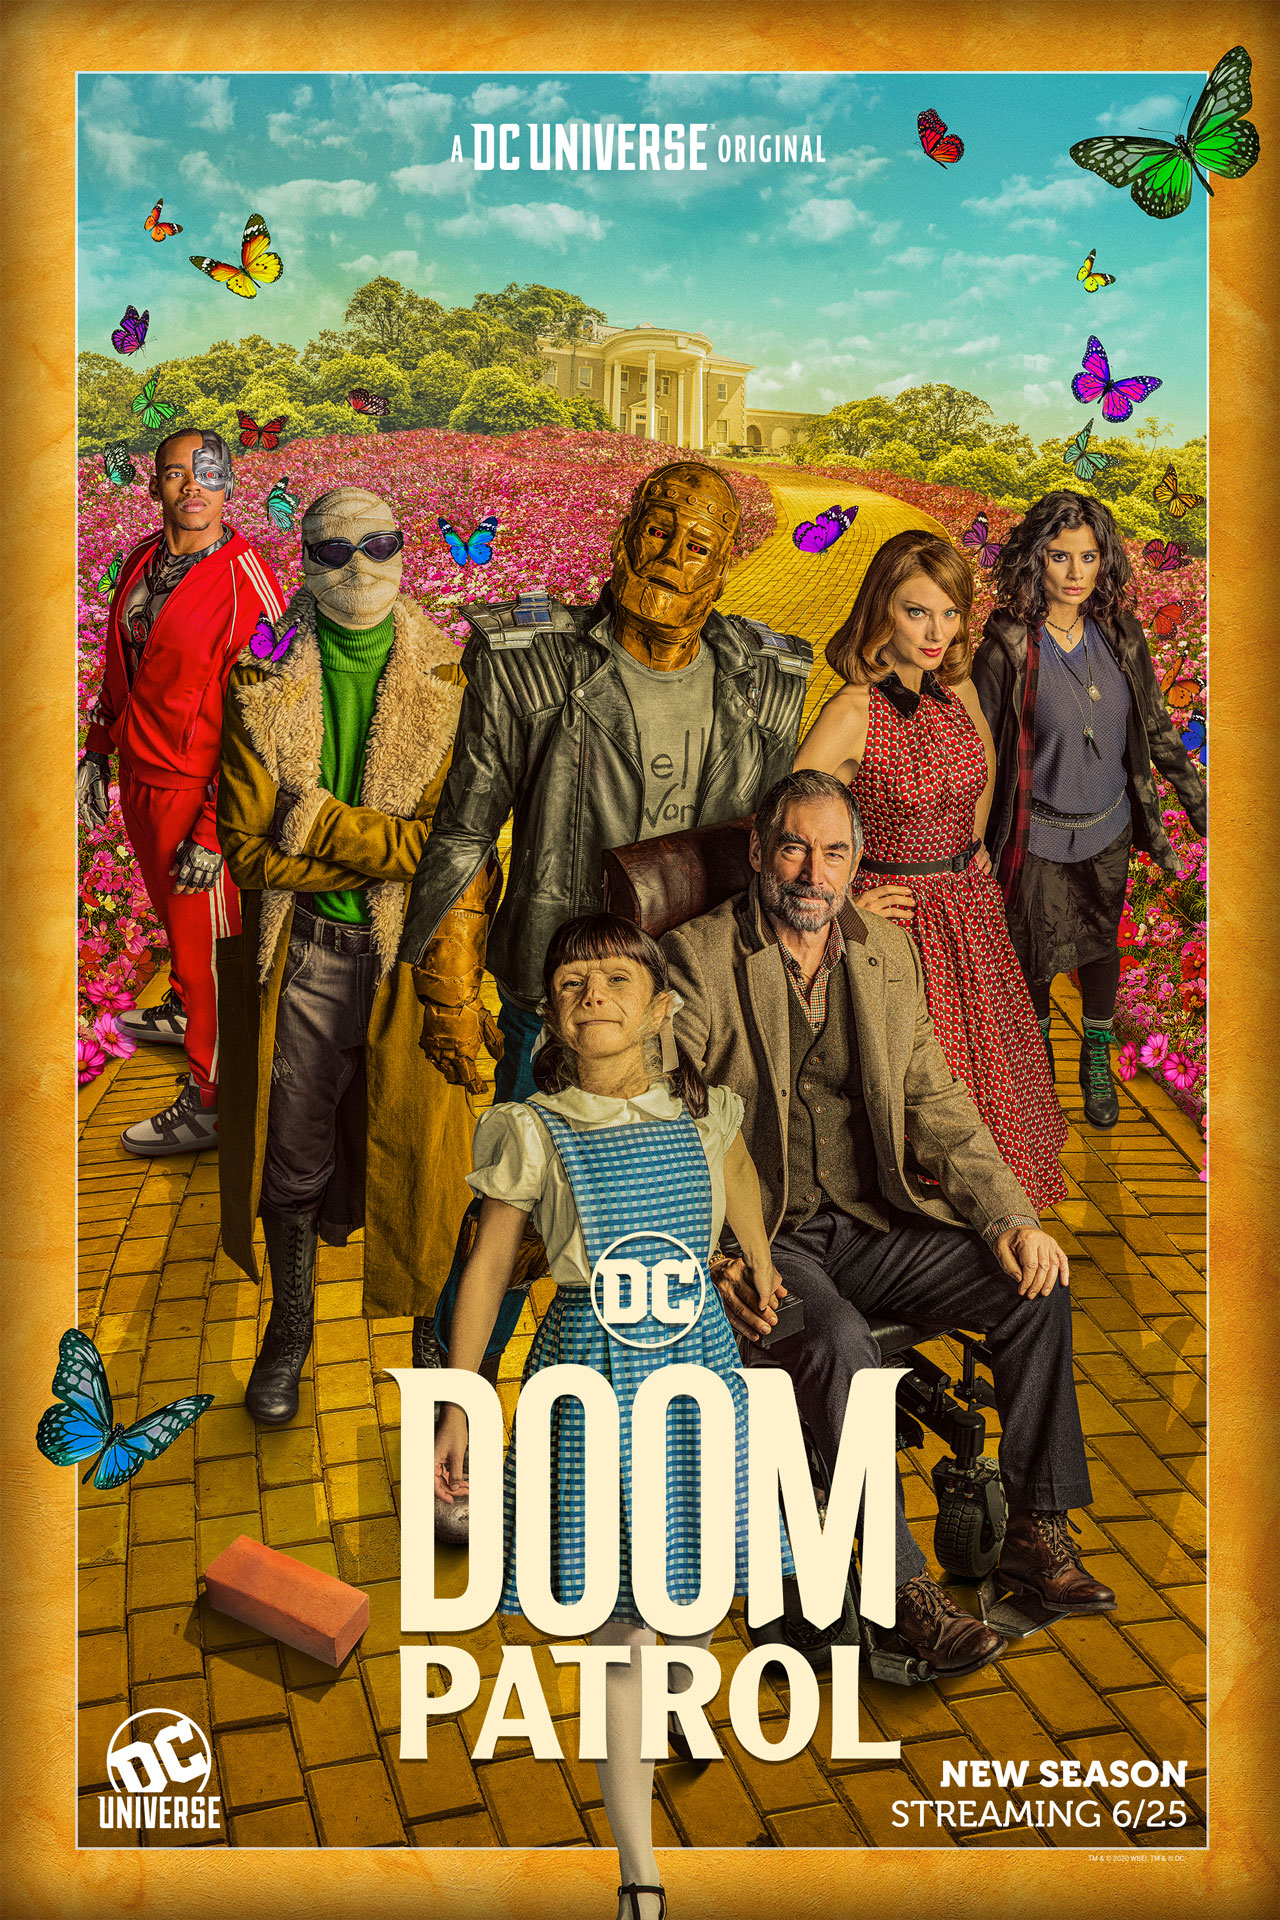 DOOM-PATROL-Season-2.jpg